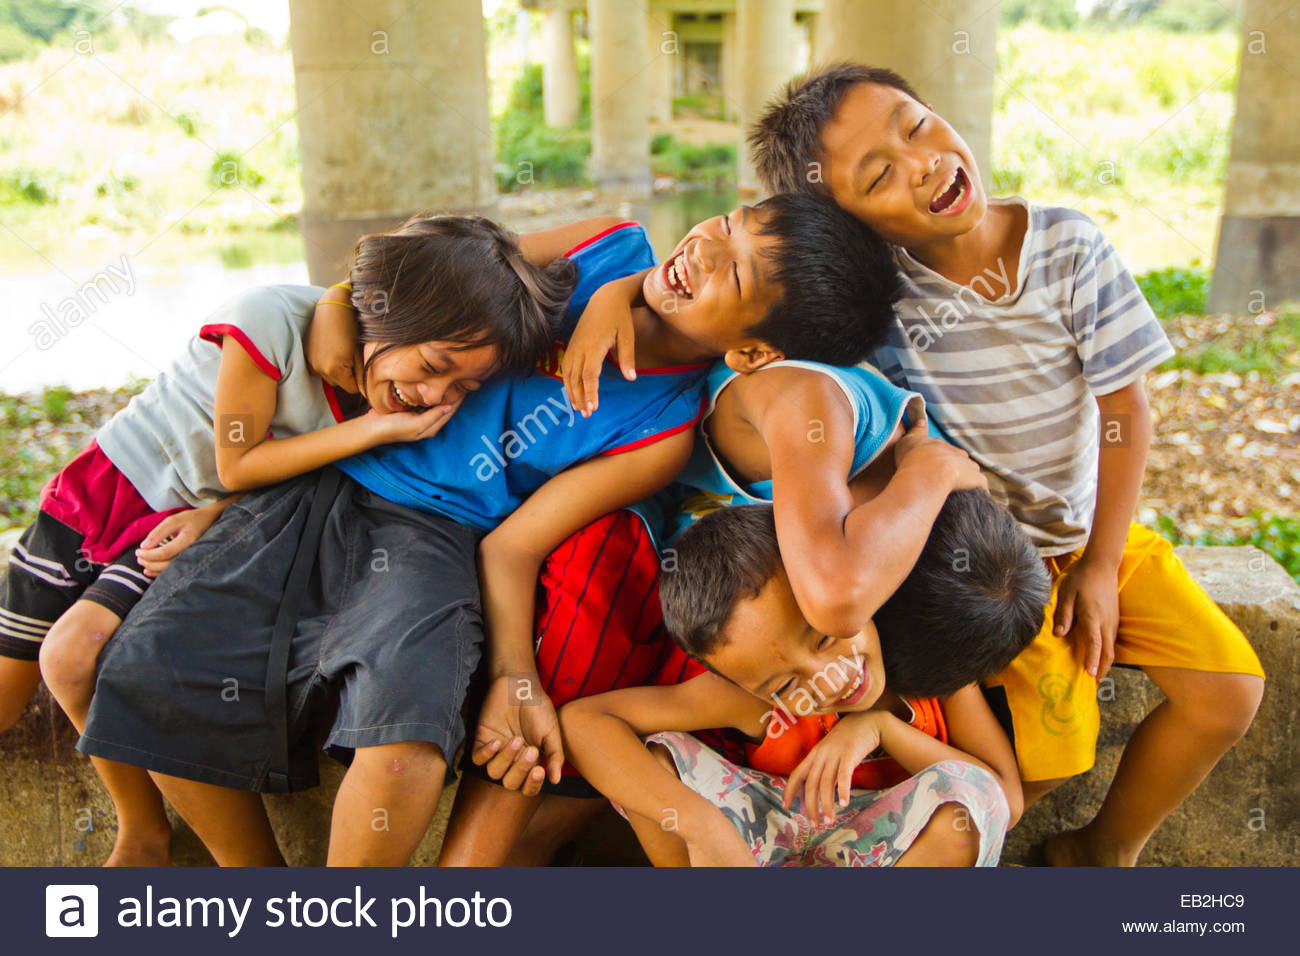 A group of kids that live under a bridge messing around and having fun. - Stock Image